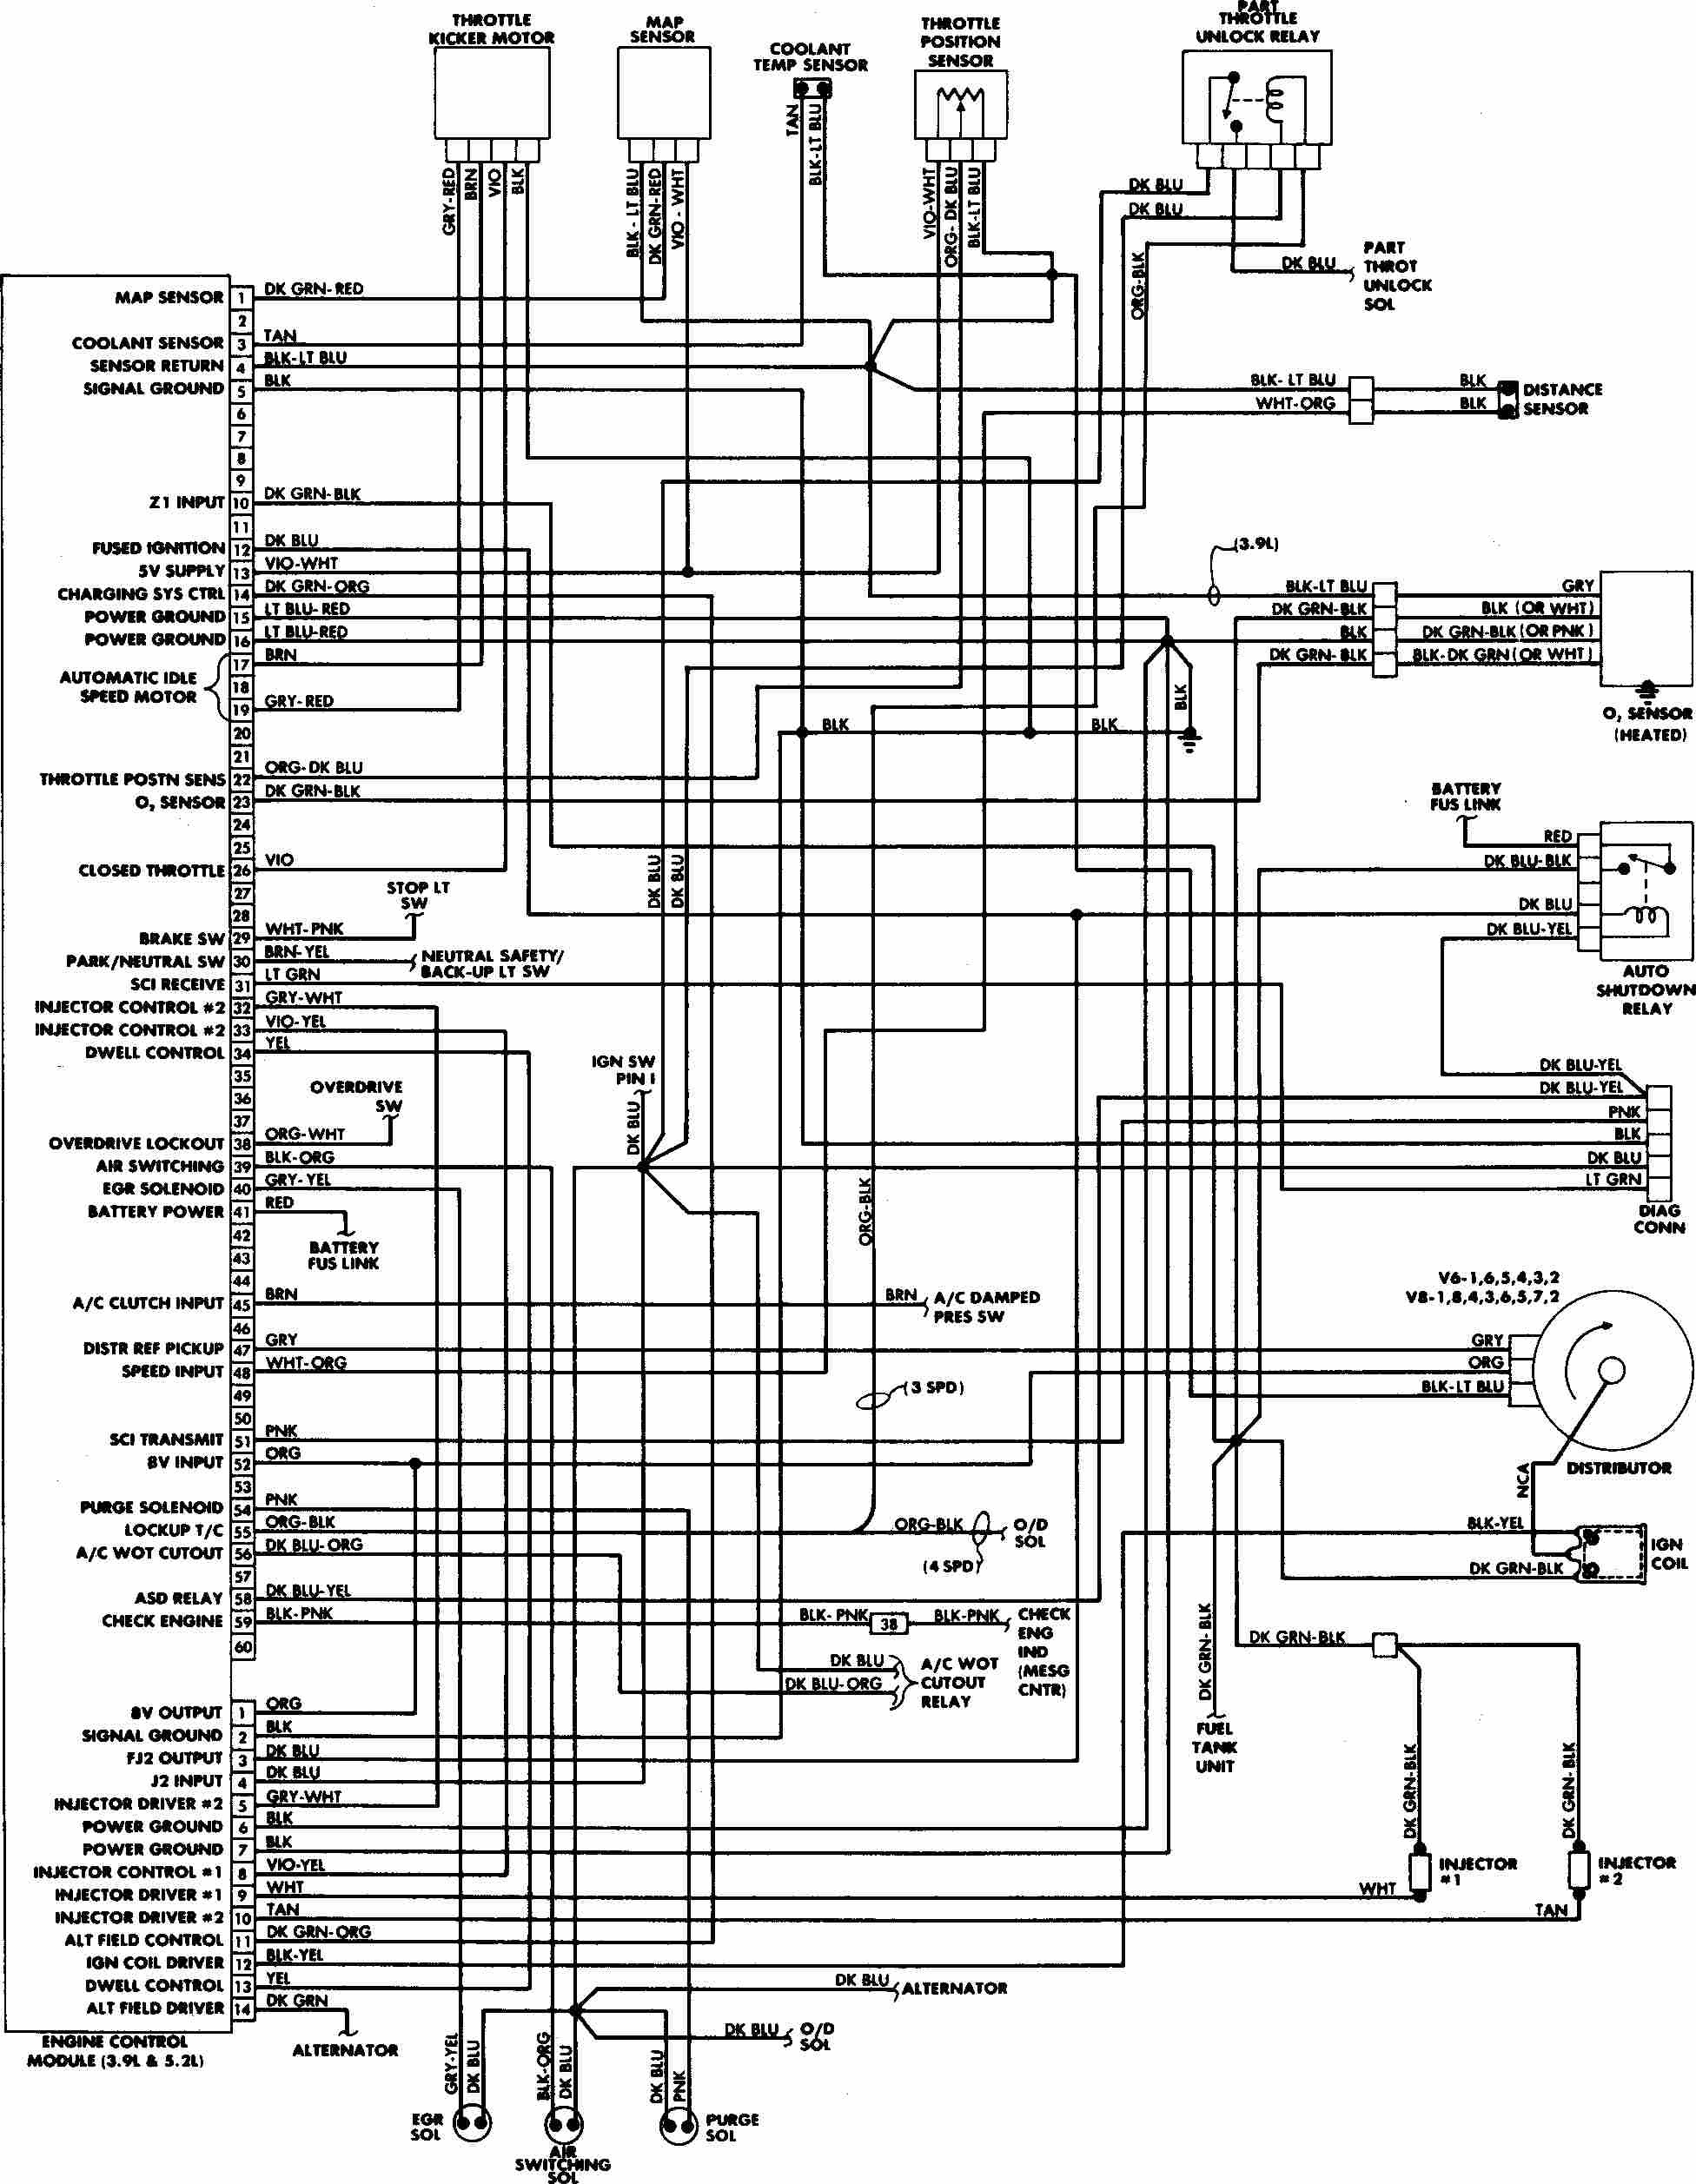 Chevy S10 Light Diagram